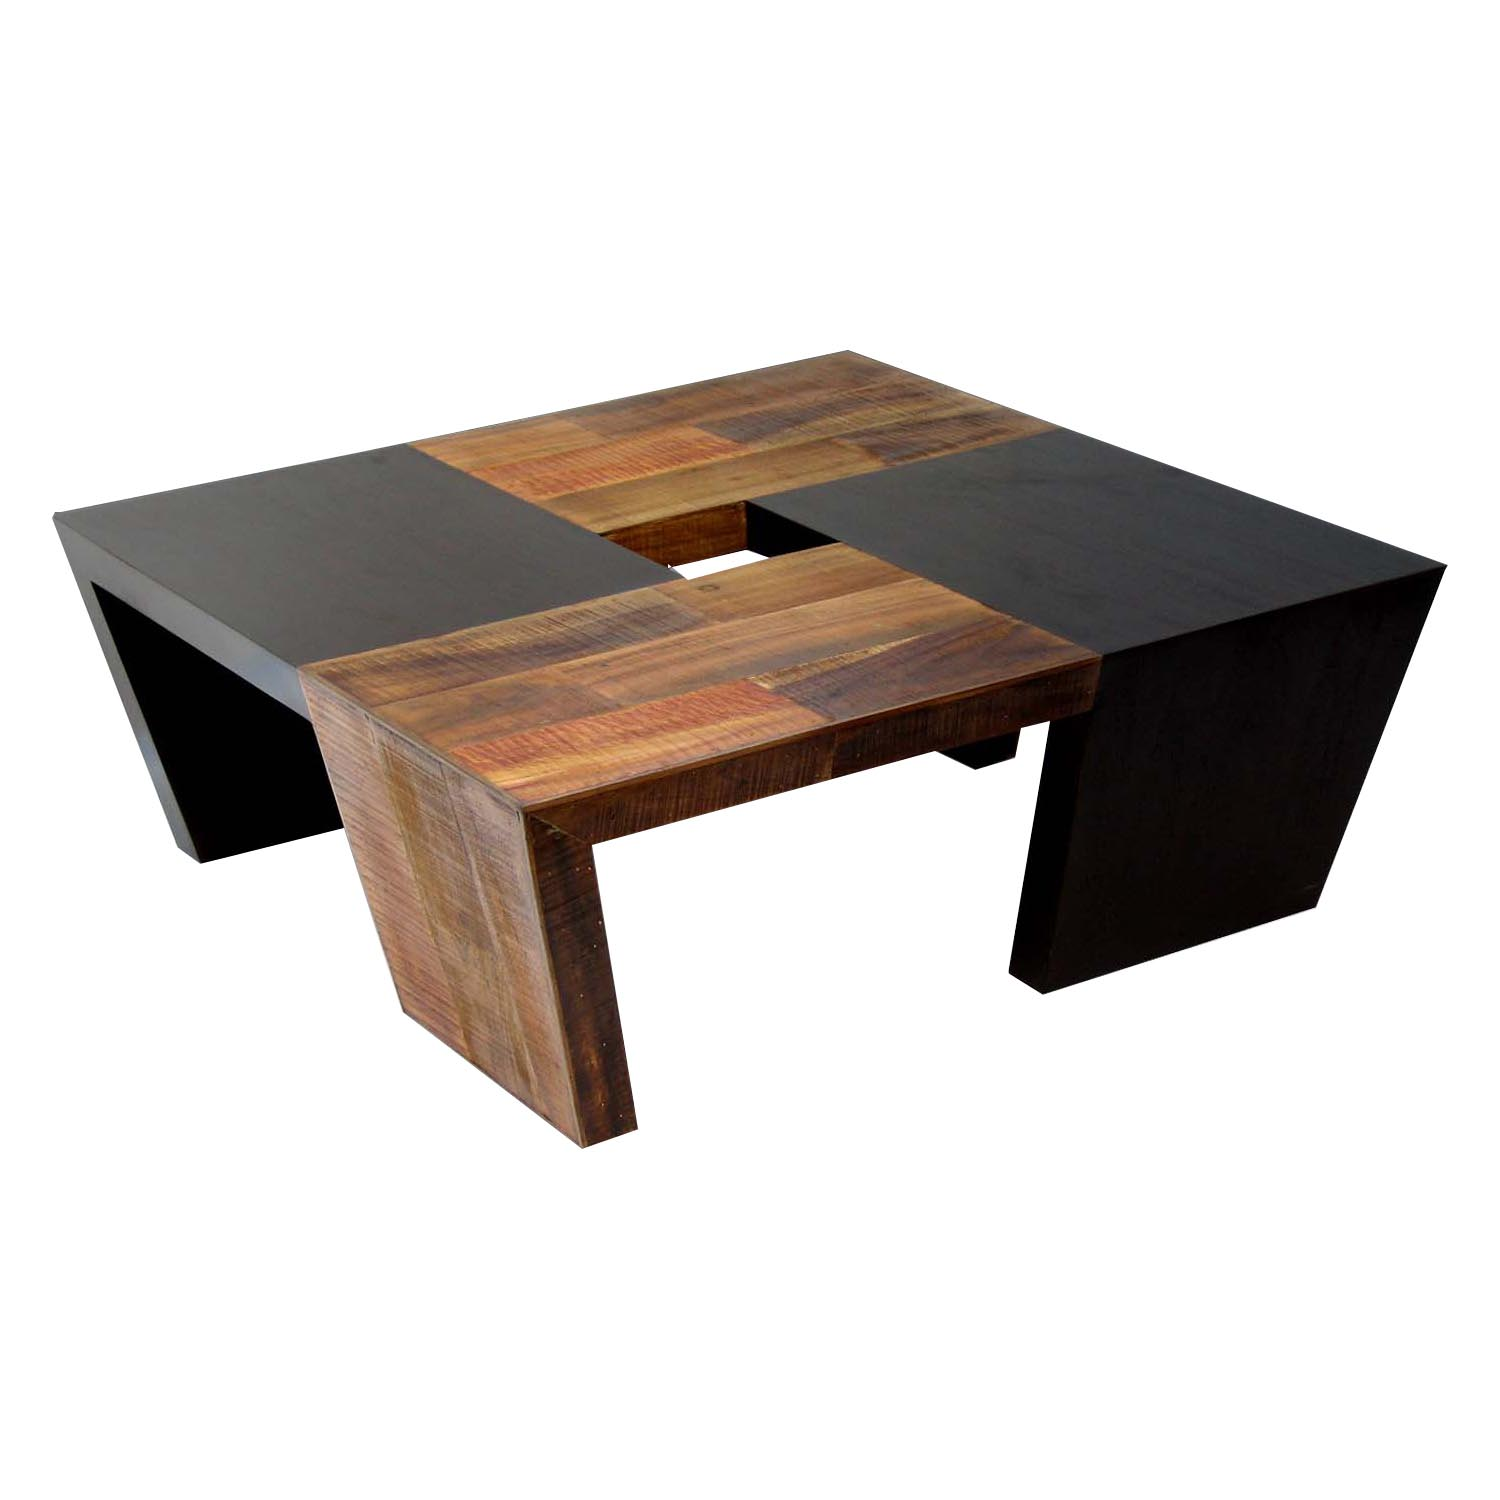 Modern Wooden Coffee Table Designs Modern Wood Coffee Table Coffee Table Design Ideas